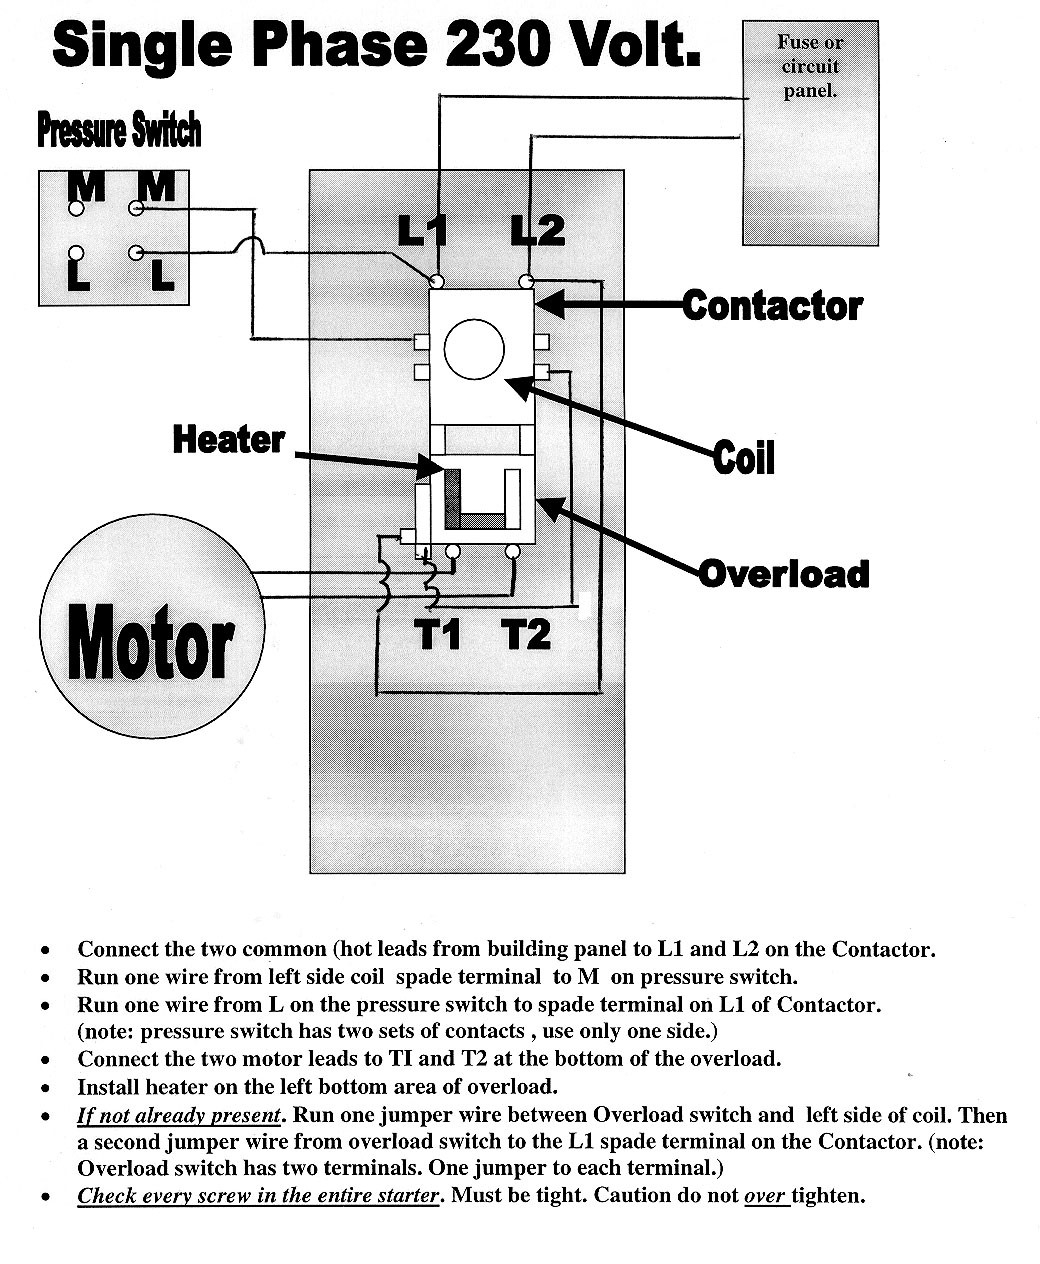 motor starter wiring diagram pdf Collection-Weg Motor Capacitor Wiring Diagrams Schematics and Baldor Diagram In Cutler Hammer Starter Wiring Diagram 4-h